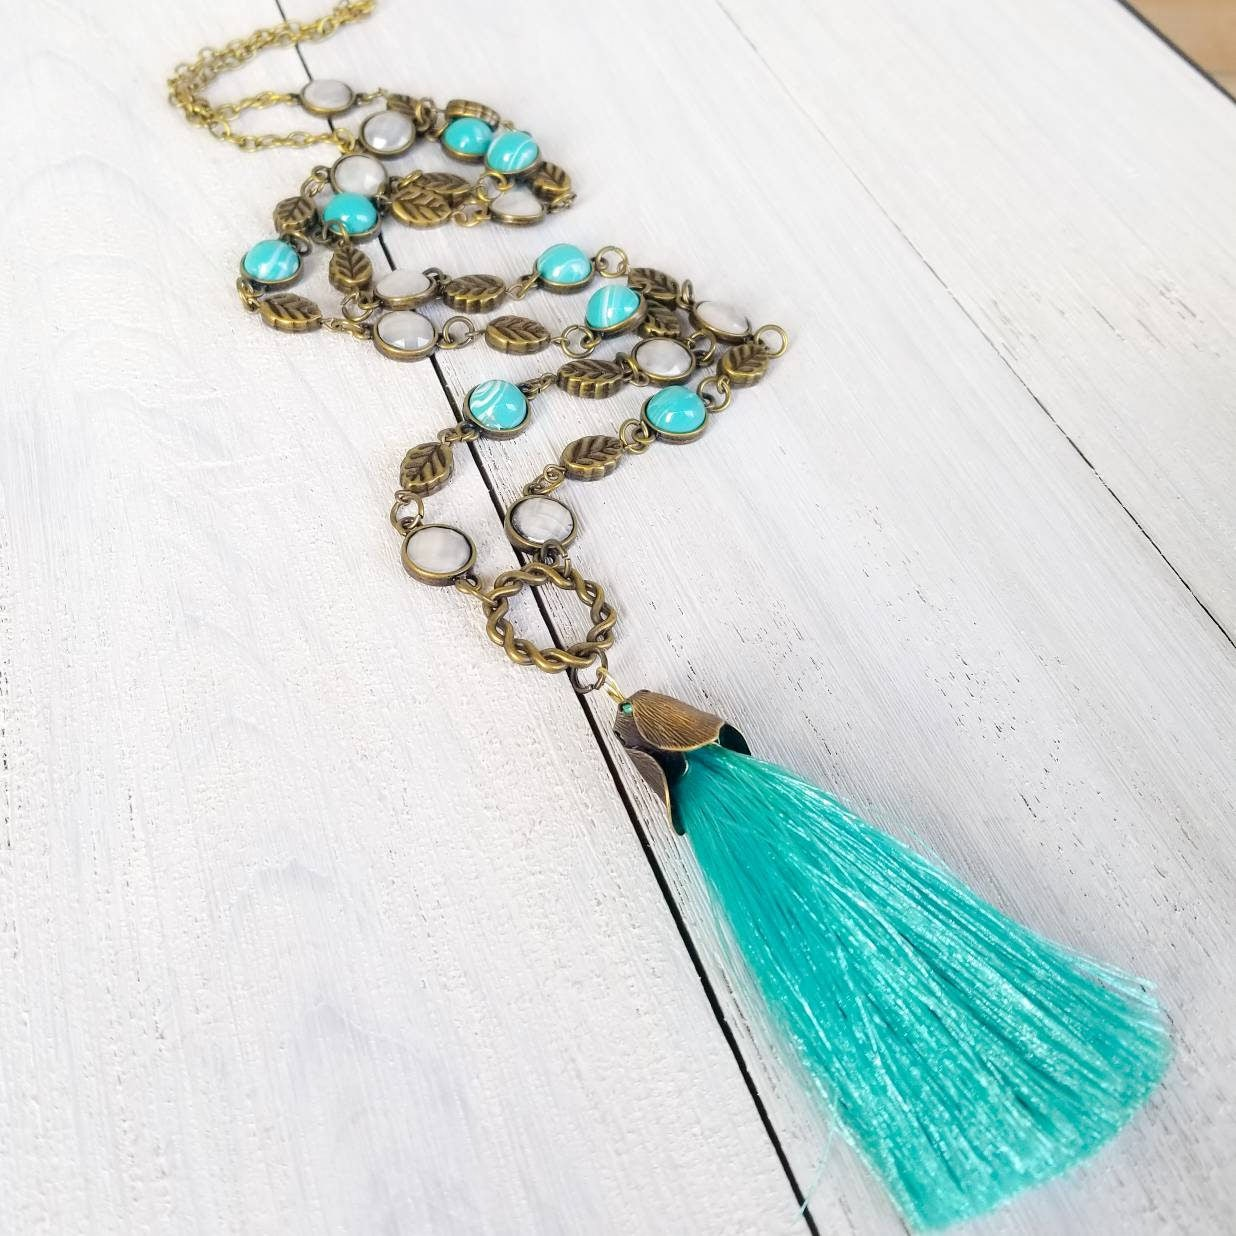 necklaces andamir products necklace boho jewelry by style bohemian raya chic